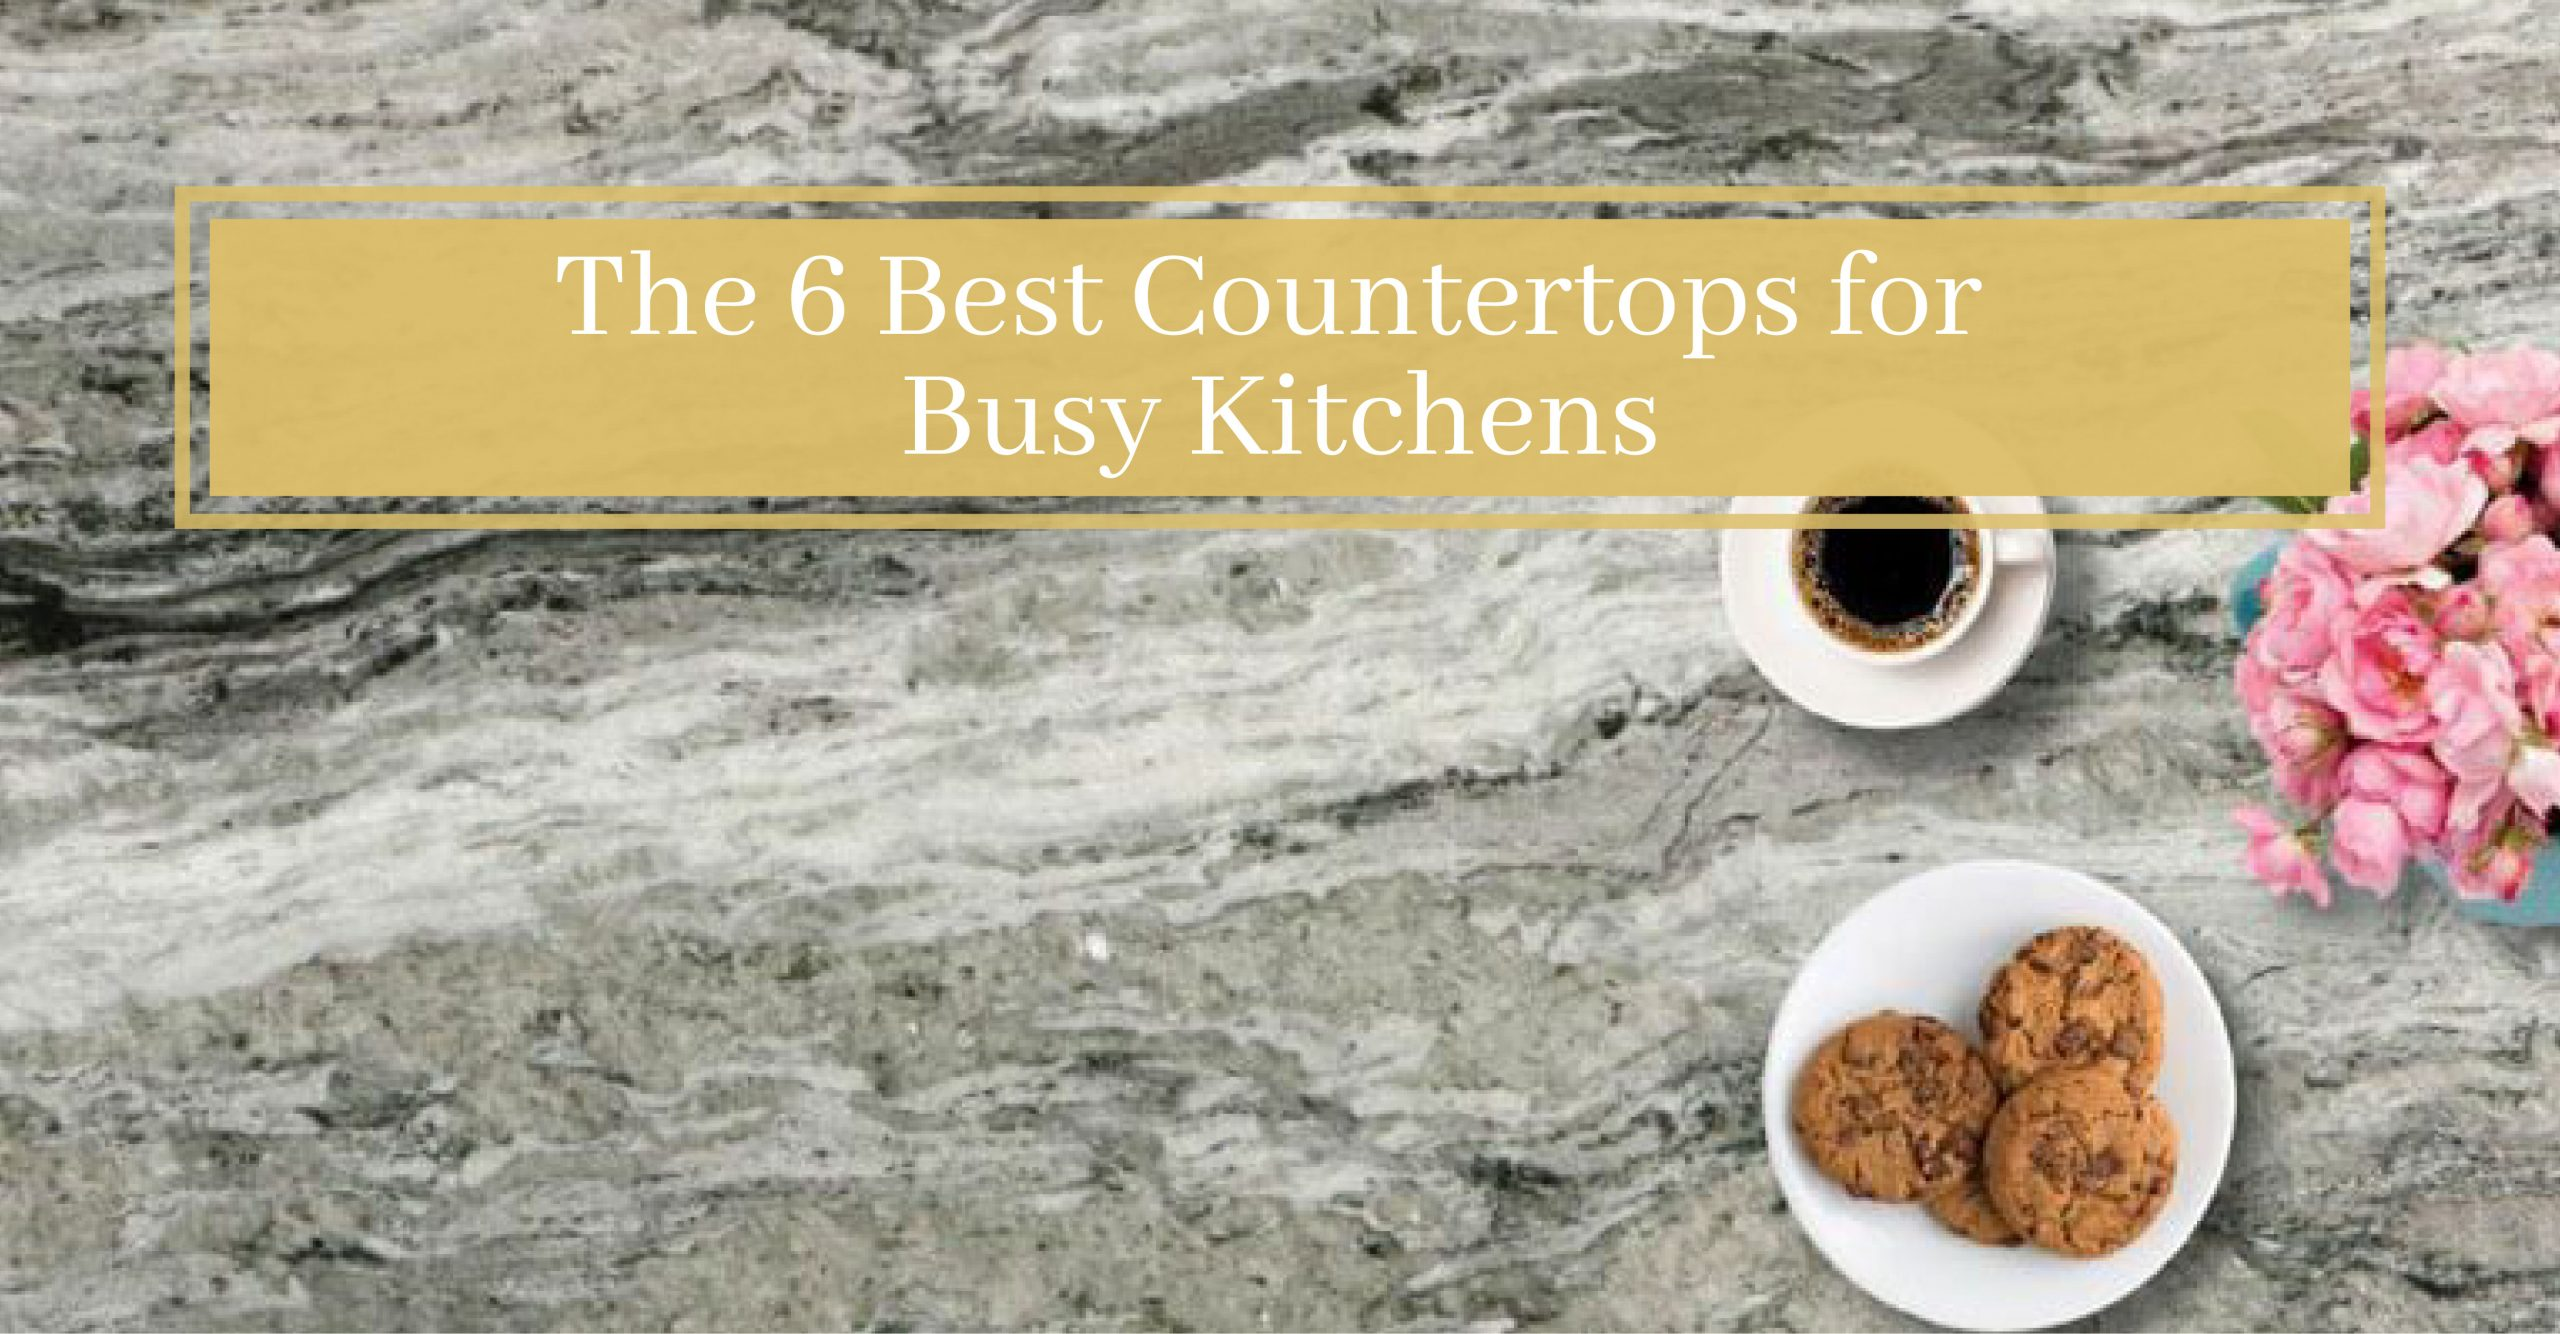 countertops-for-busy-kitchens